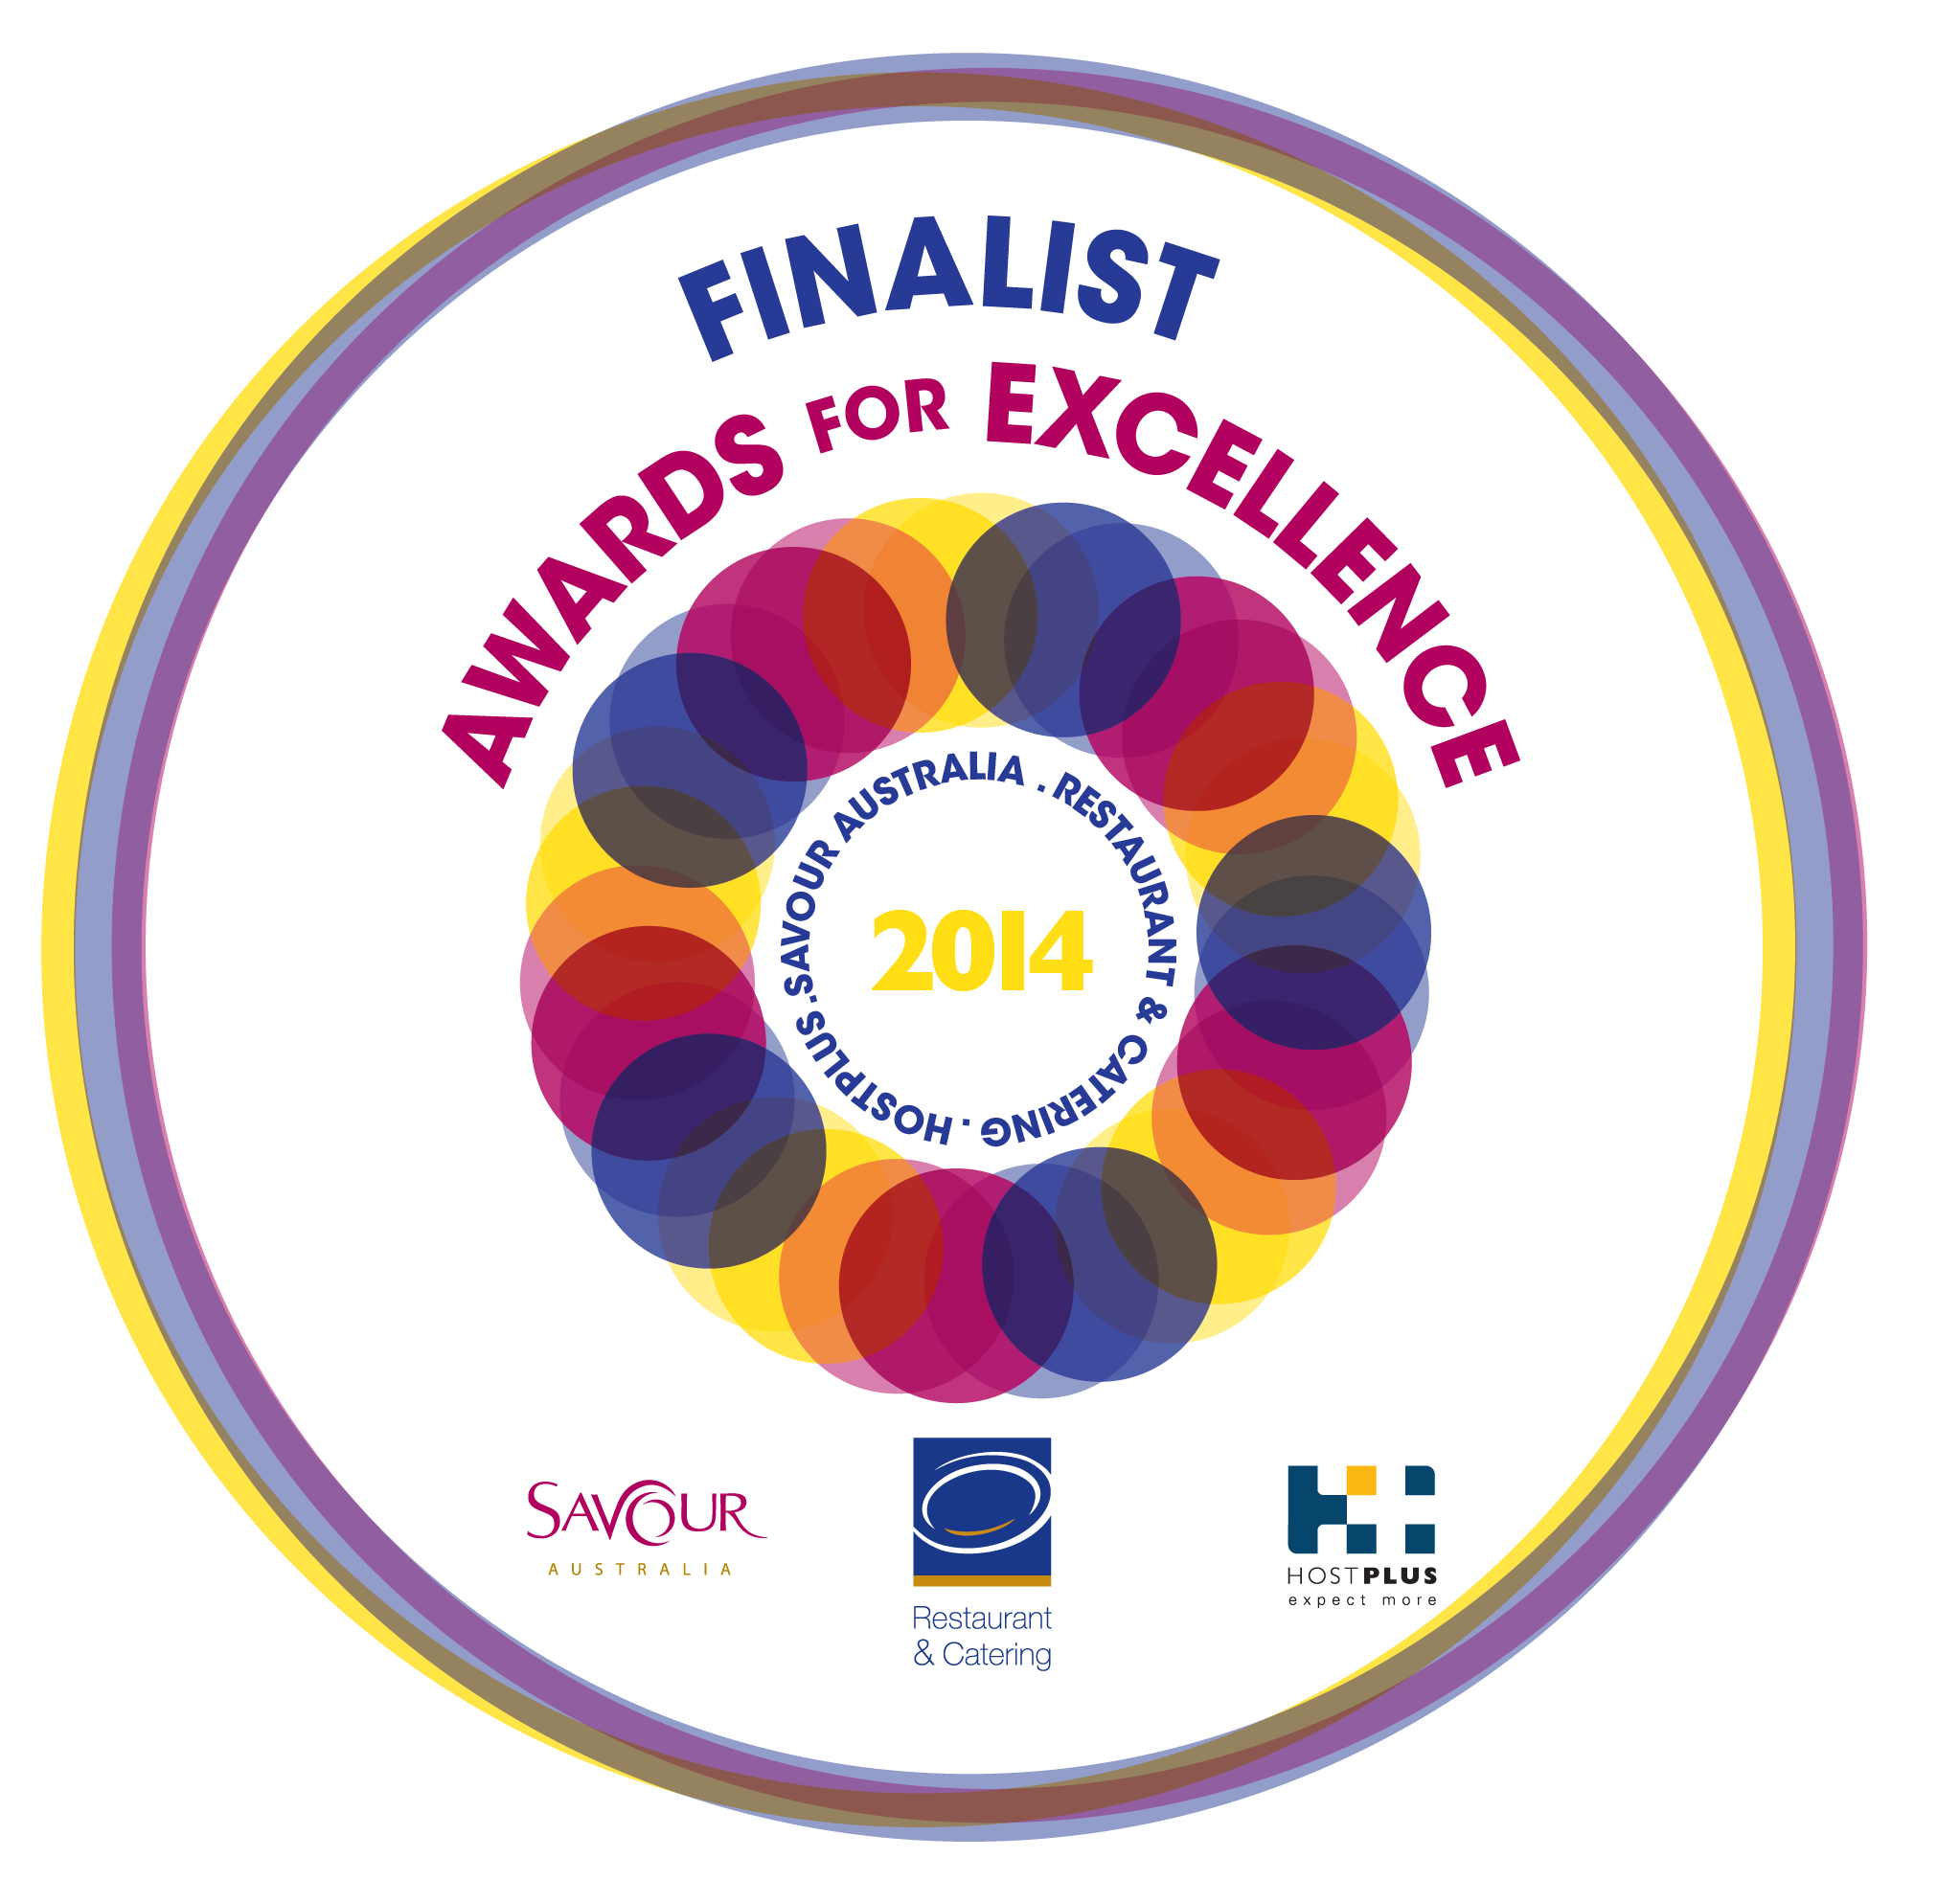 savour-australia-catering-finalist-2014.png